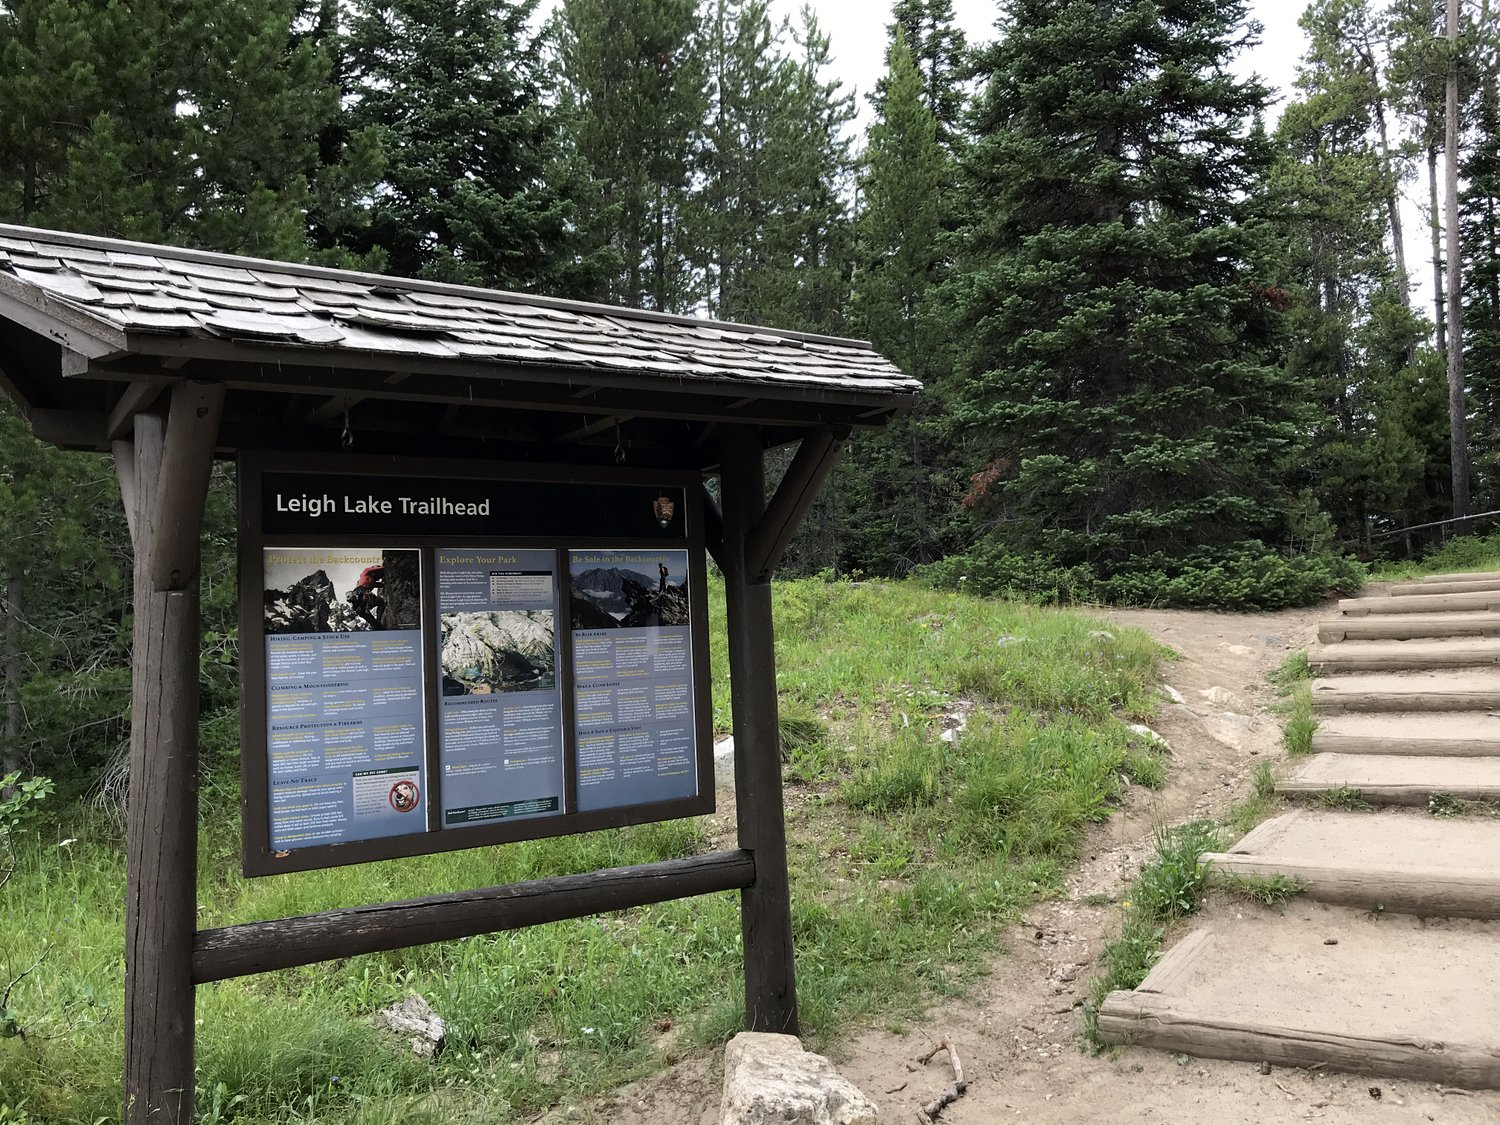 Leigh Lake Trailhead